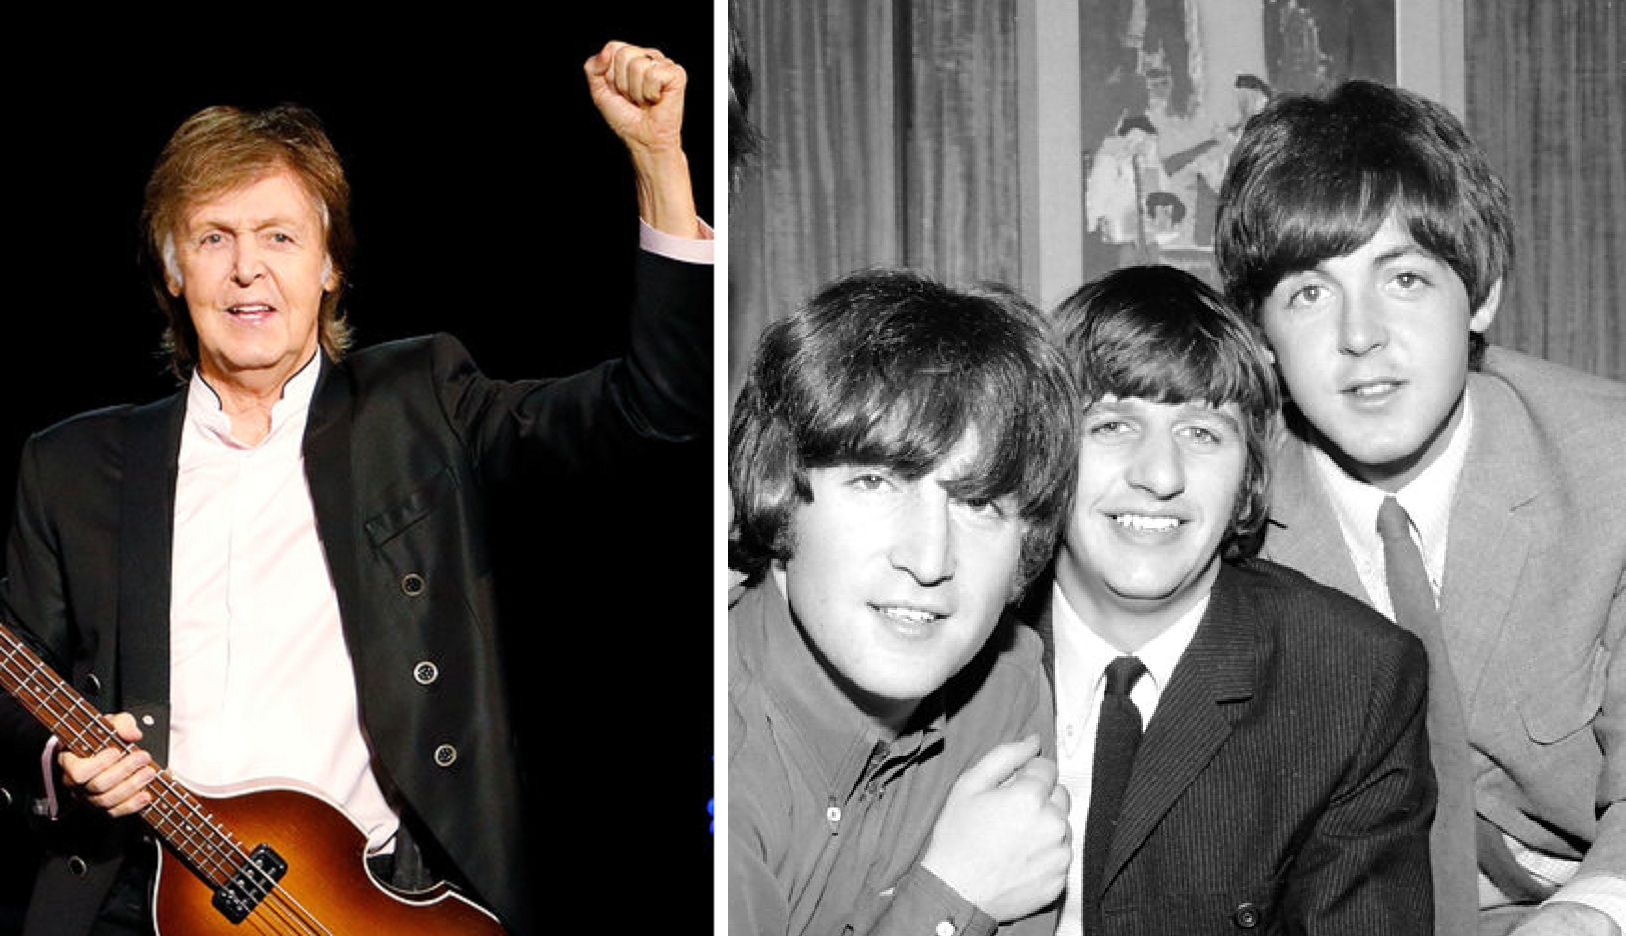 Paul McCartney Remembers When He and John Lennon Used to…ahem, Masturbate together!